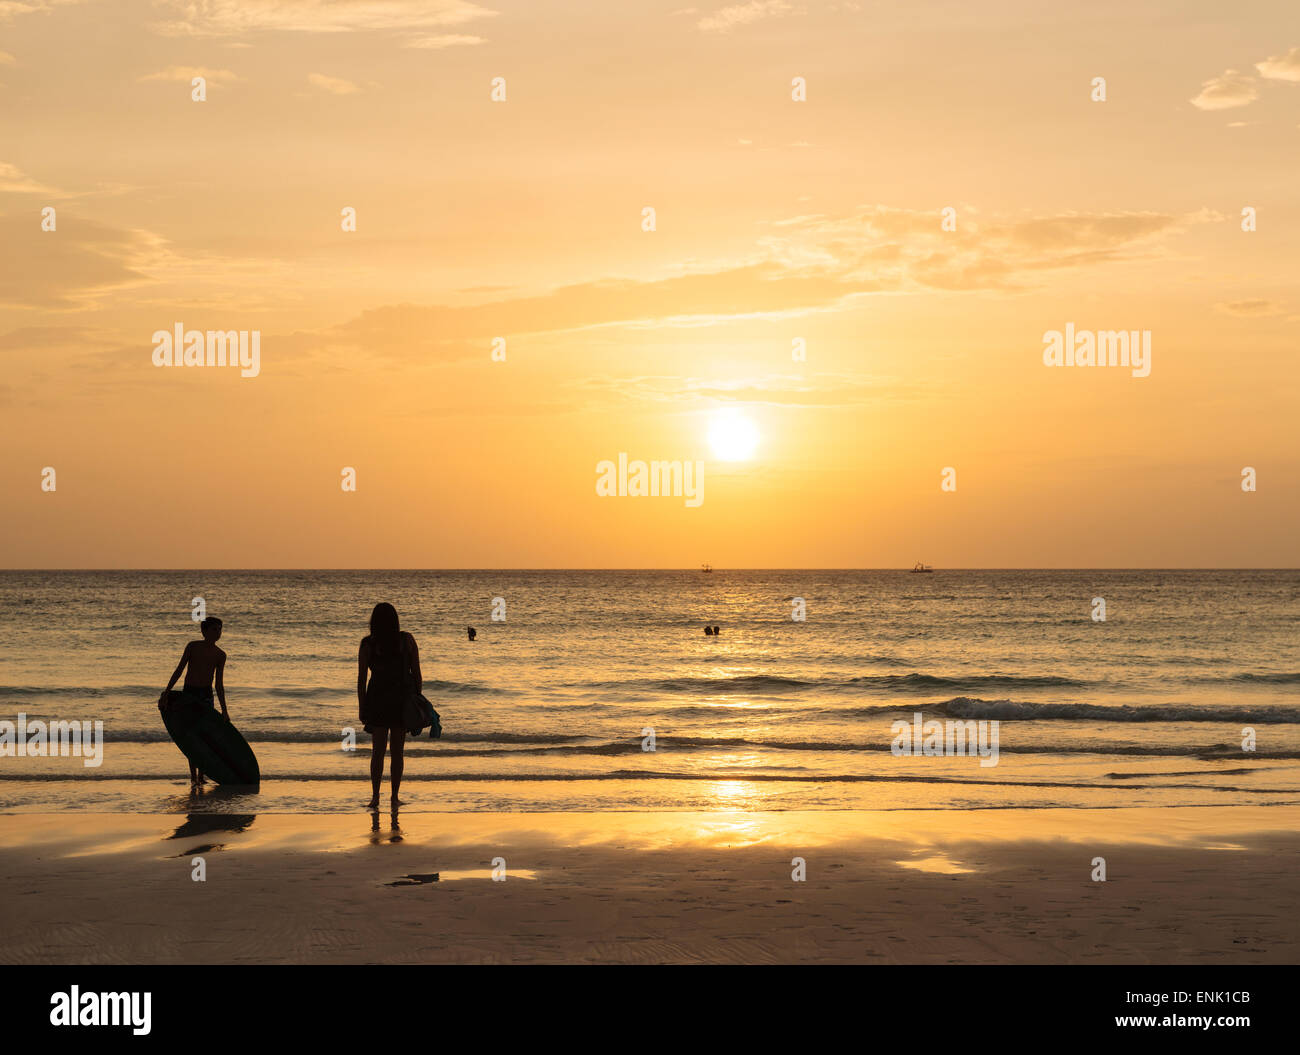 White Beach, Boracay, The Visayas, Philippines, Southeast Asia, Asia Stock Photo